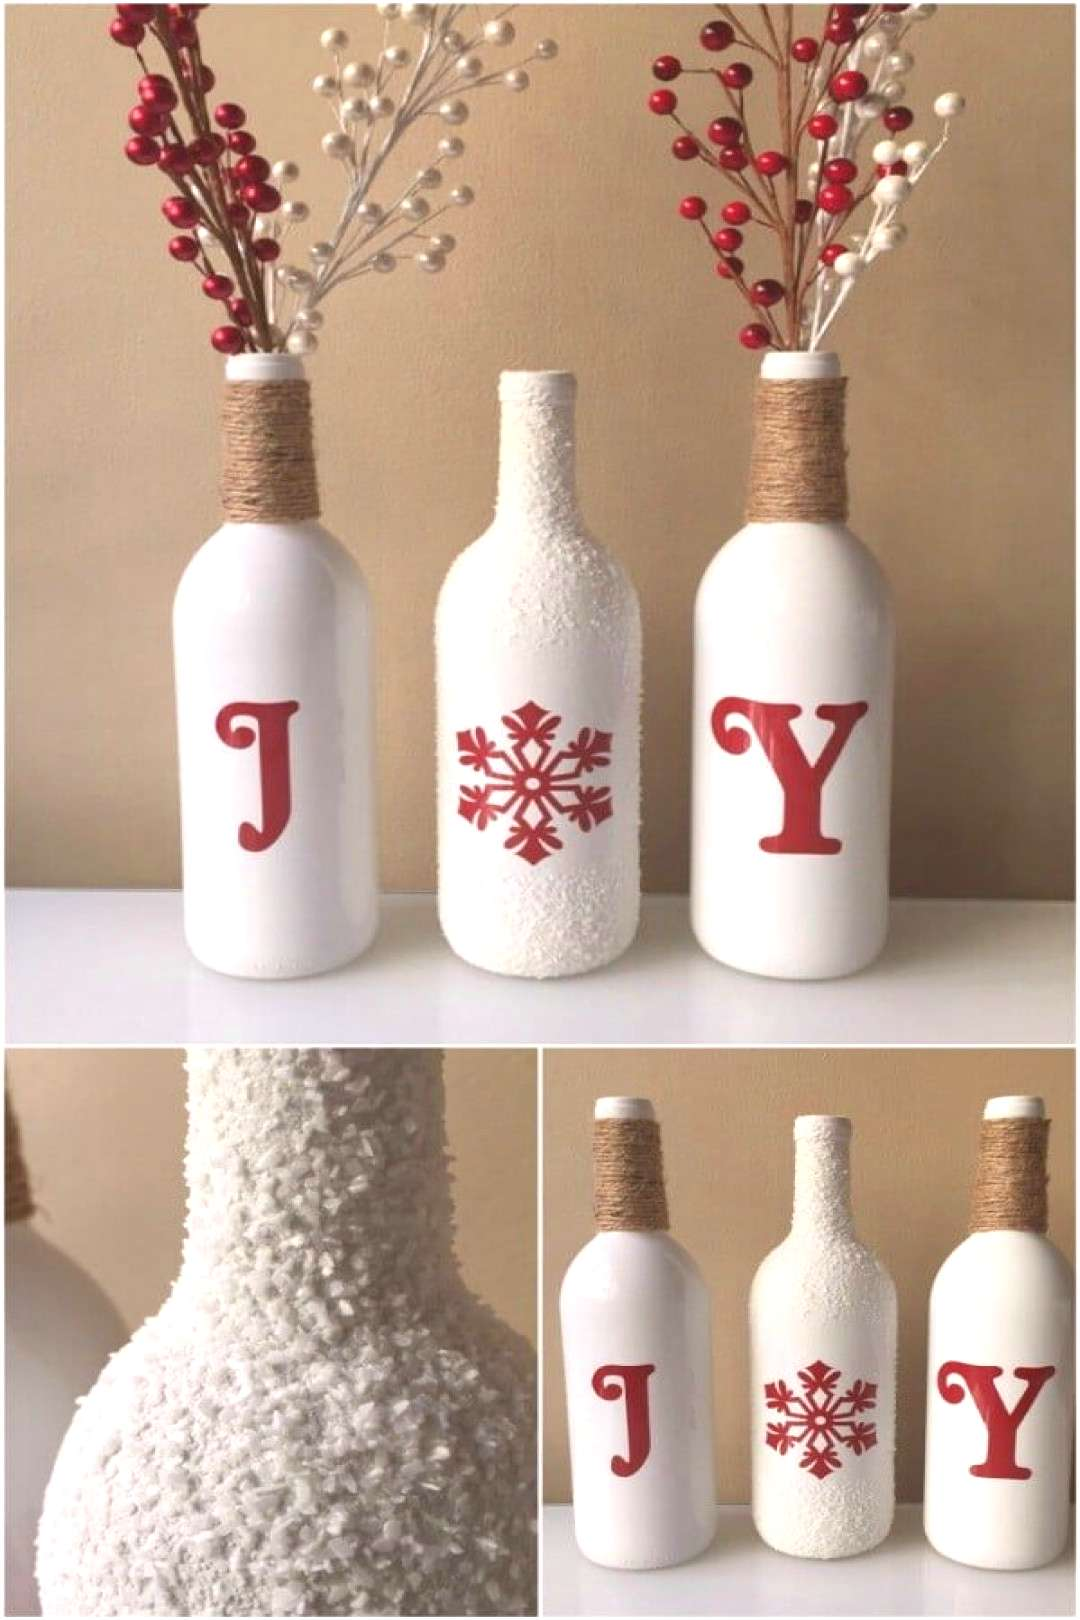 20 Festively Easy Wine Bottle Crafts For Holiday Home Decorating - So, Christmas decorating season